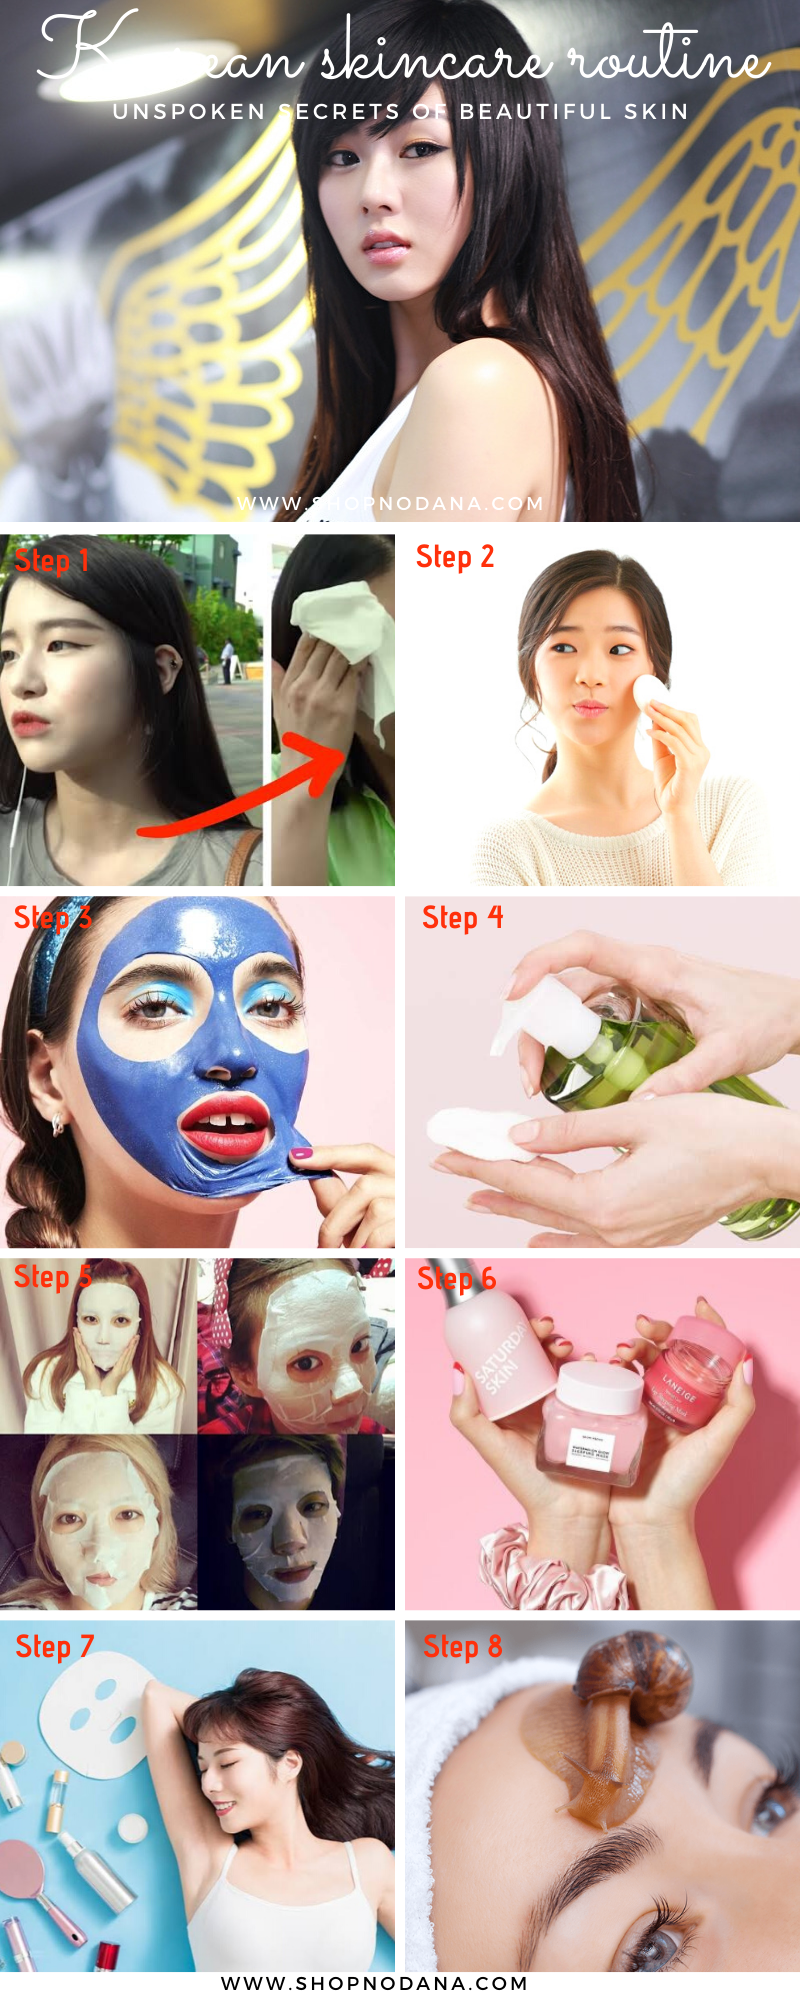 Korean skin care routine unspoken secrets of Beautiful Skin